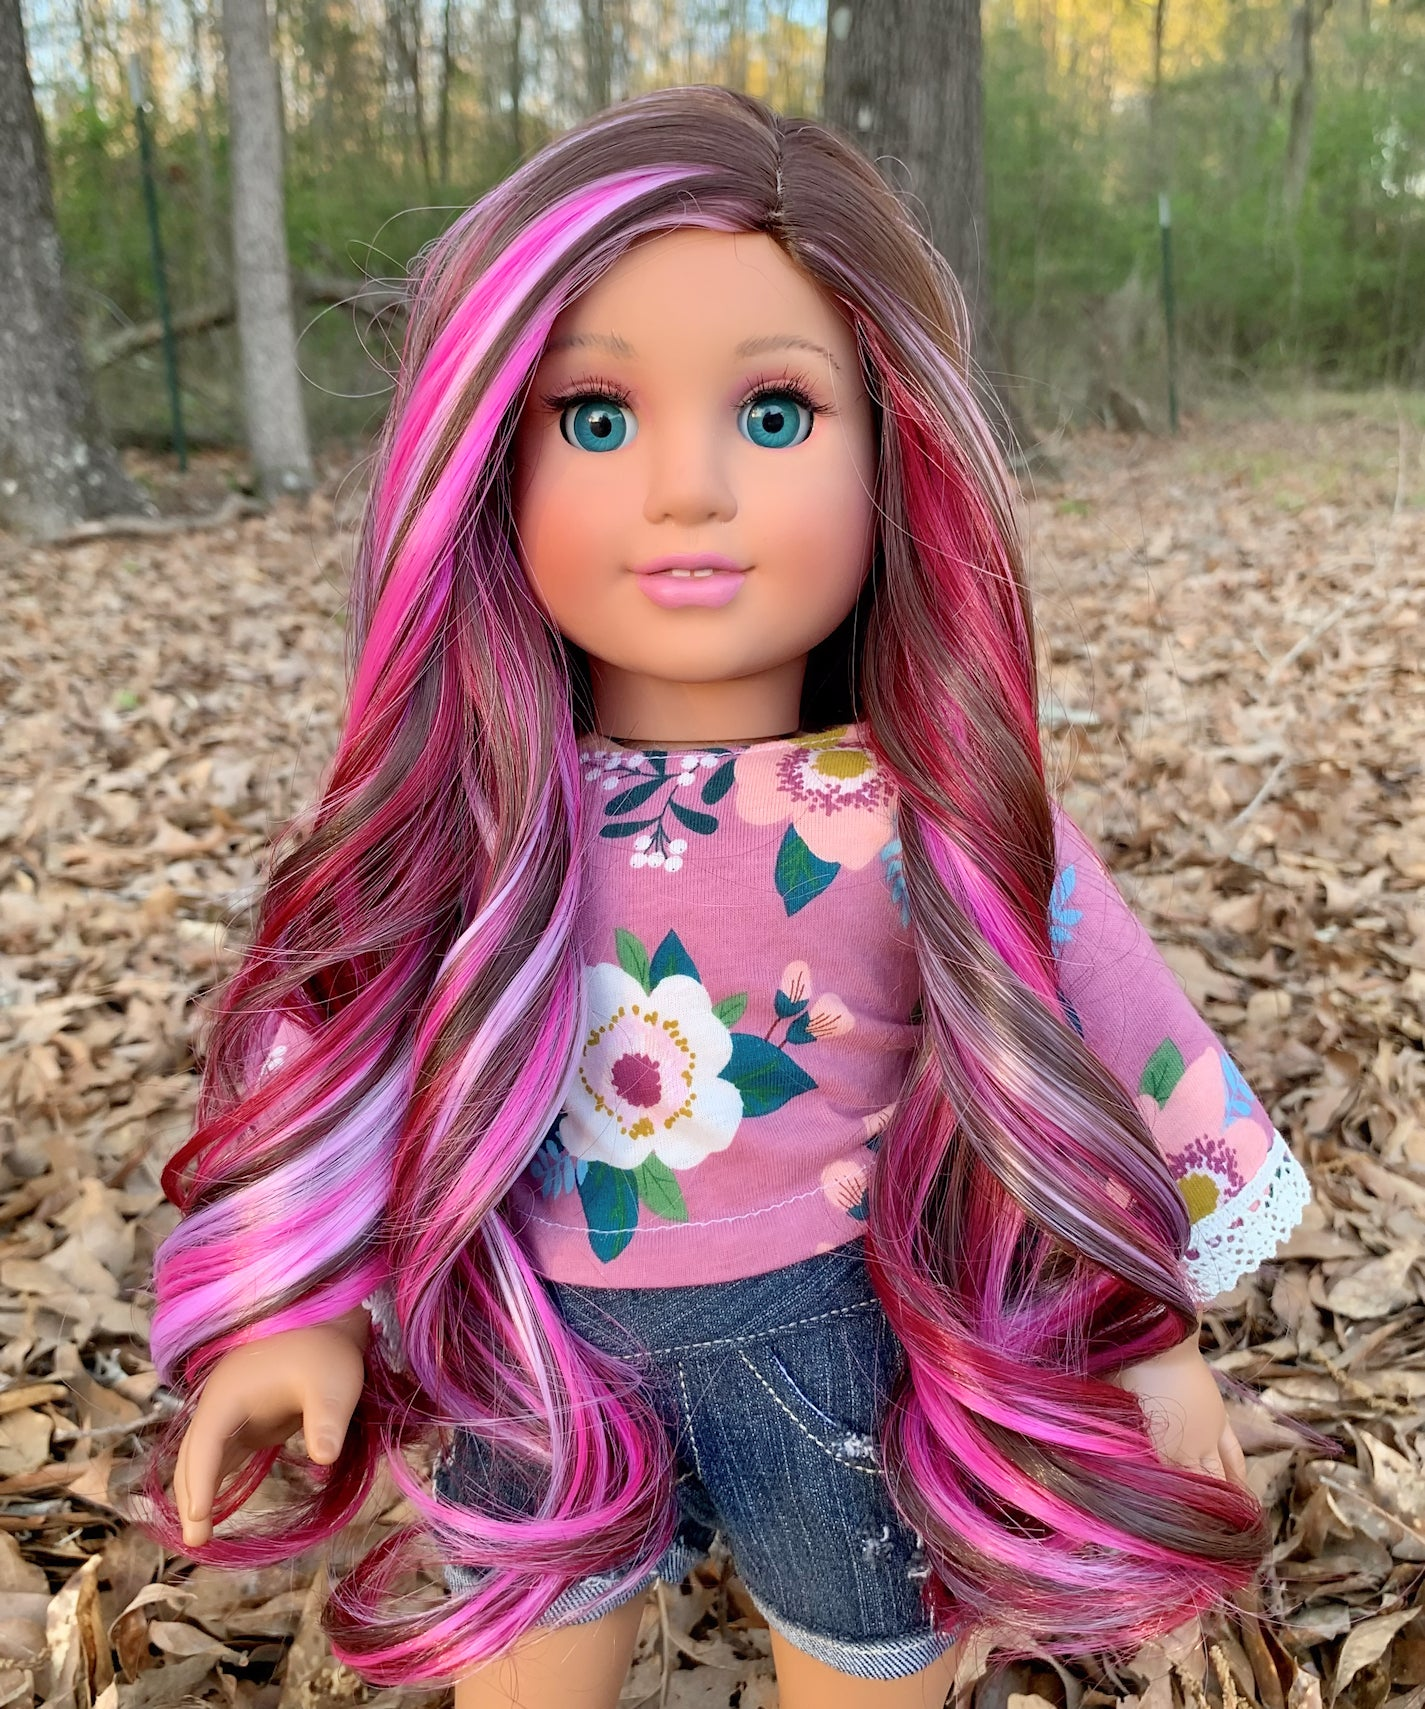 Zazou Dolls Exclusive Majesty WIG  Berry Twirl for 18 Inch dolls such as  OG & American Girl